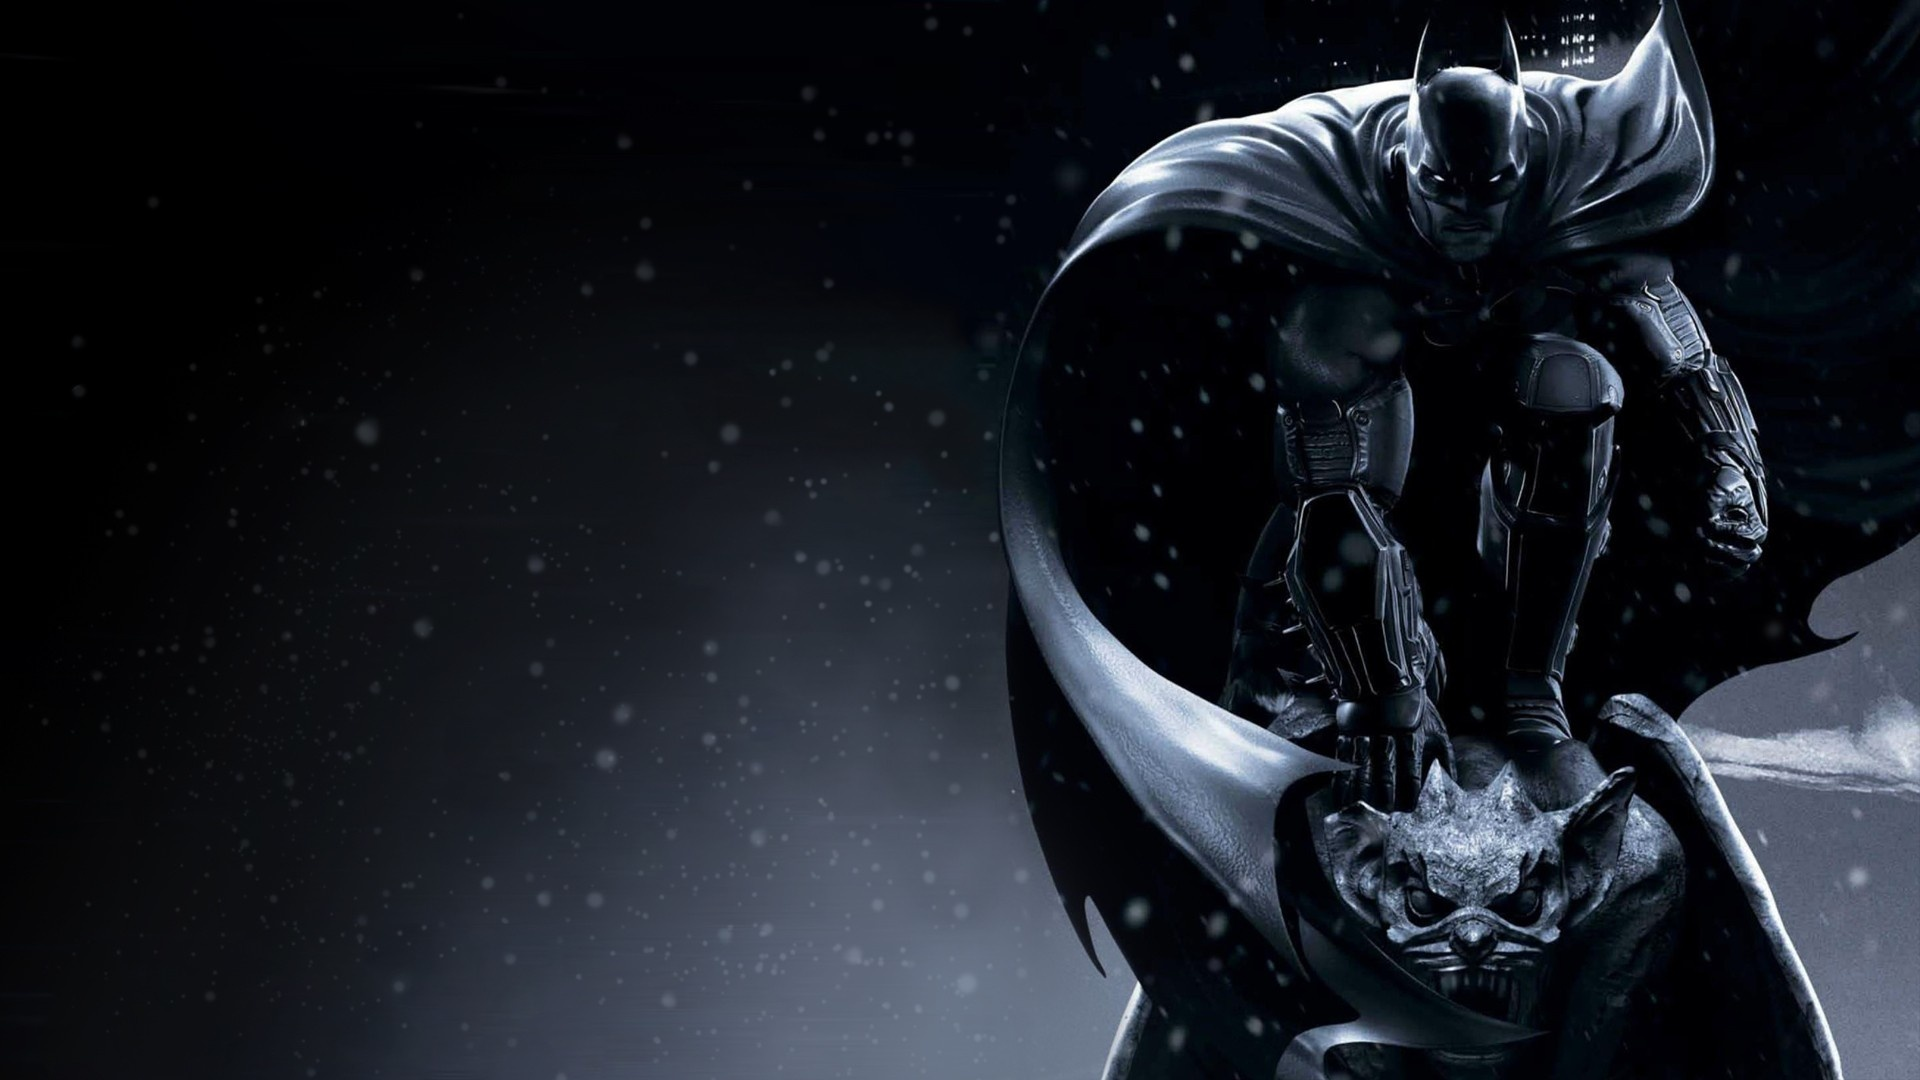 Batman HD Wallpapers for Desktop 11 1920x1080